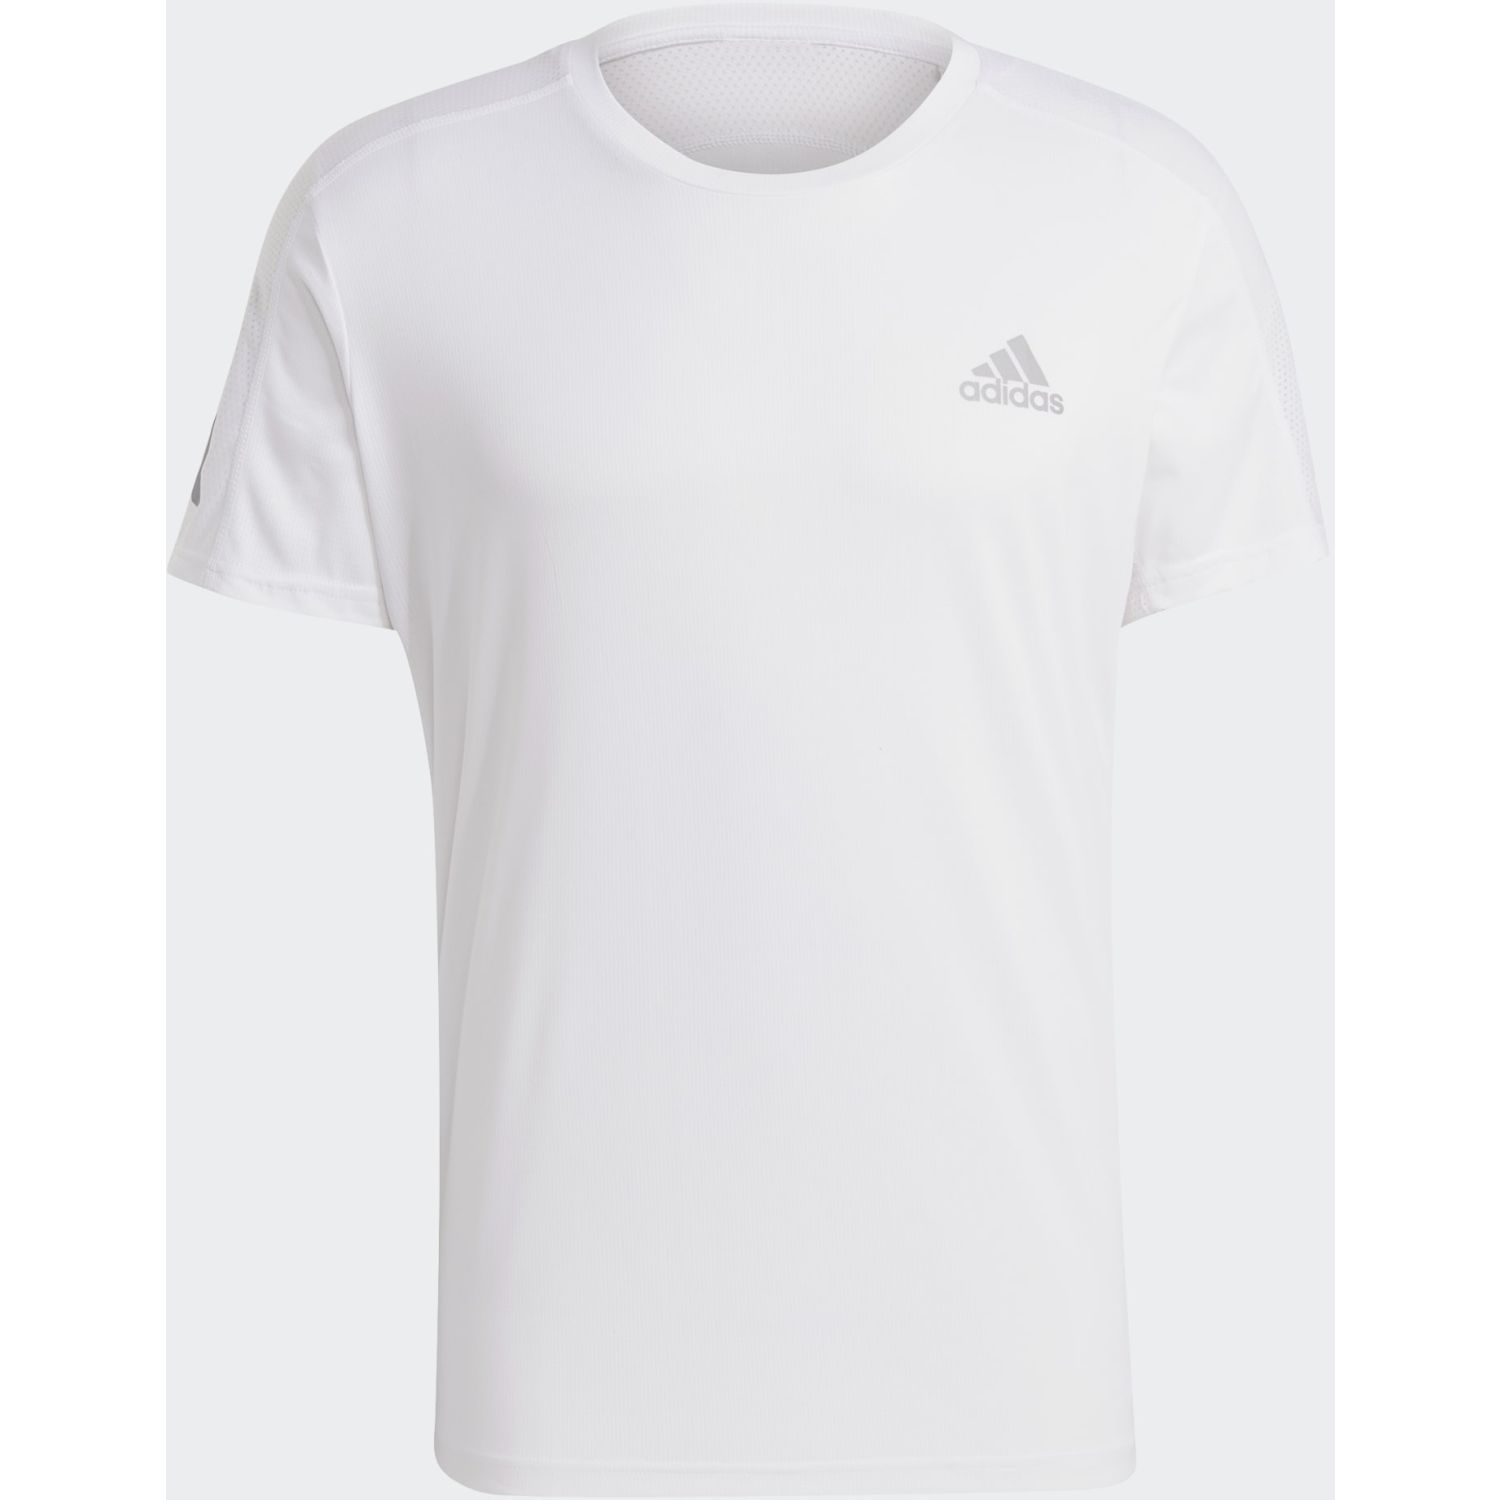 adidas Own The Run Tee Blanco Camisetas y polos deportivos